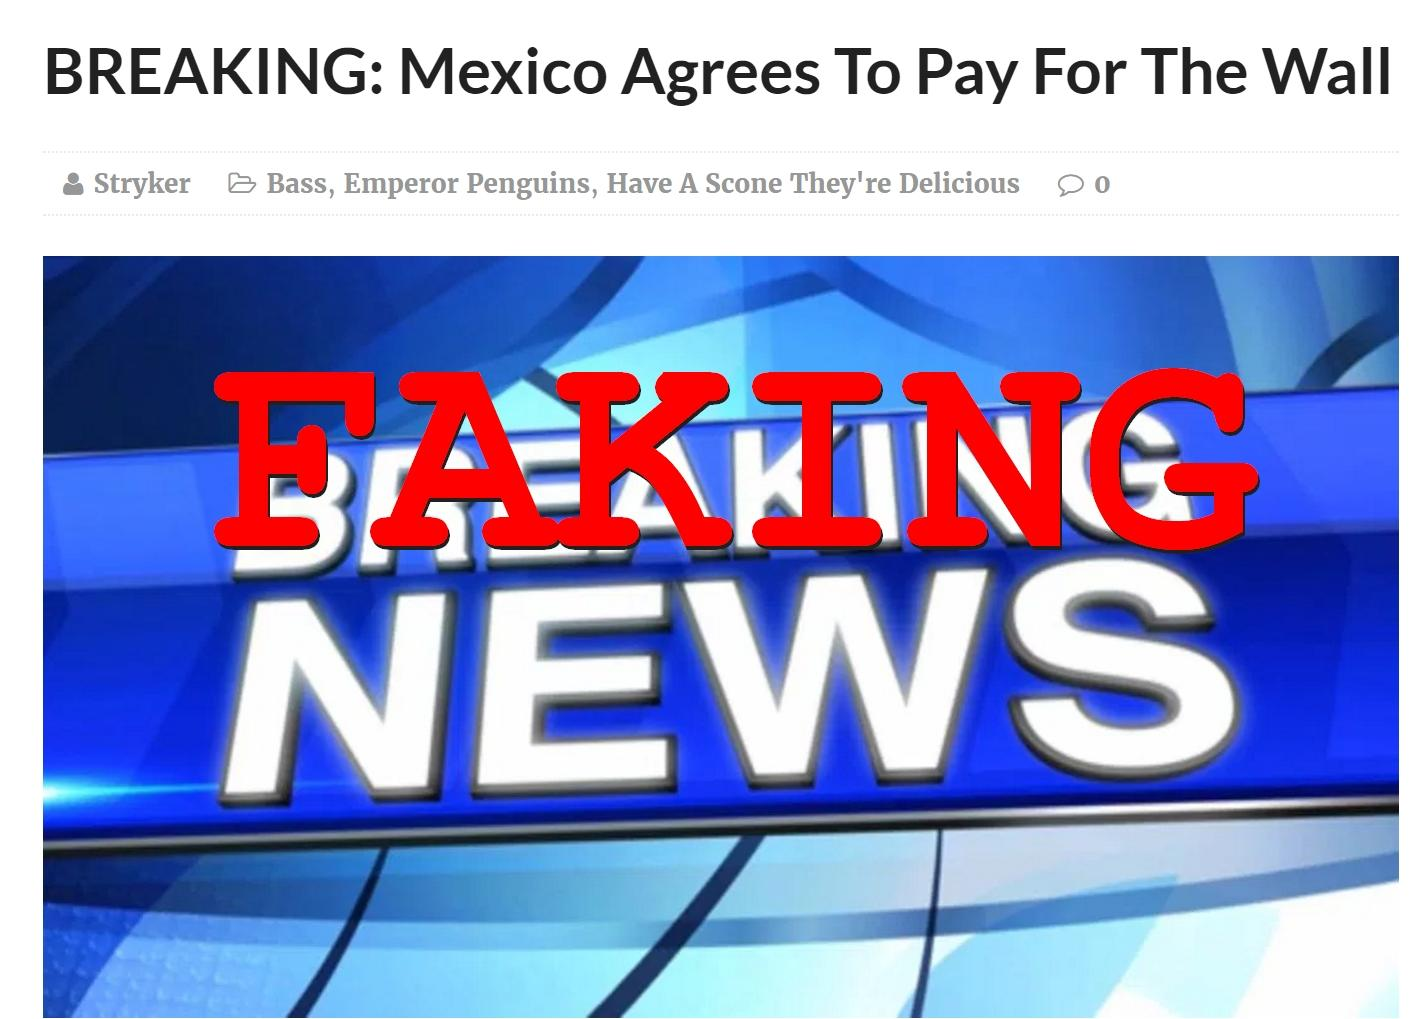 Fake News: Mexico Did NOT Agree To Pay For The Wall